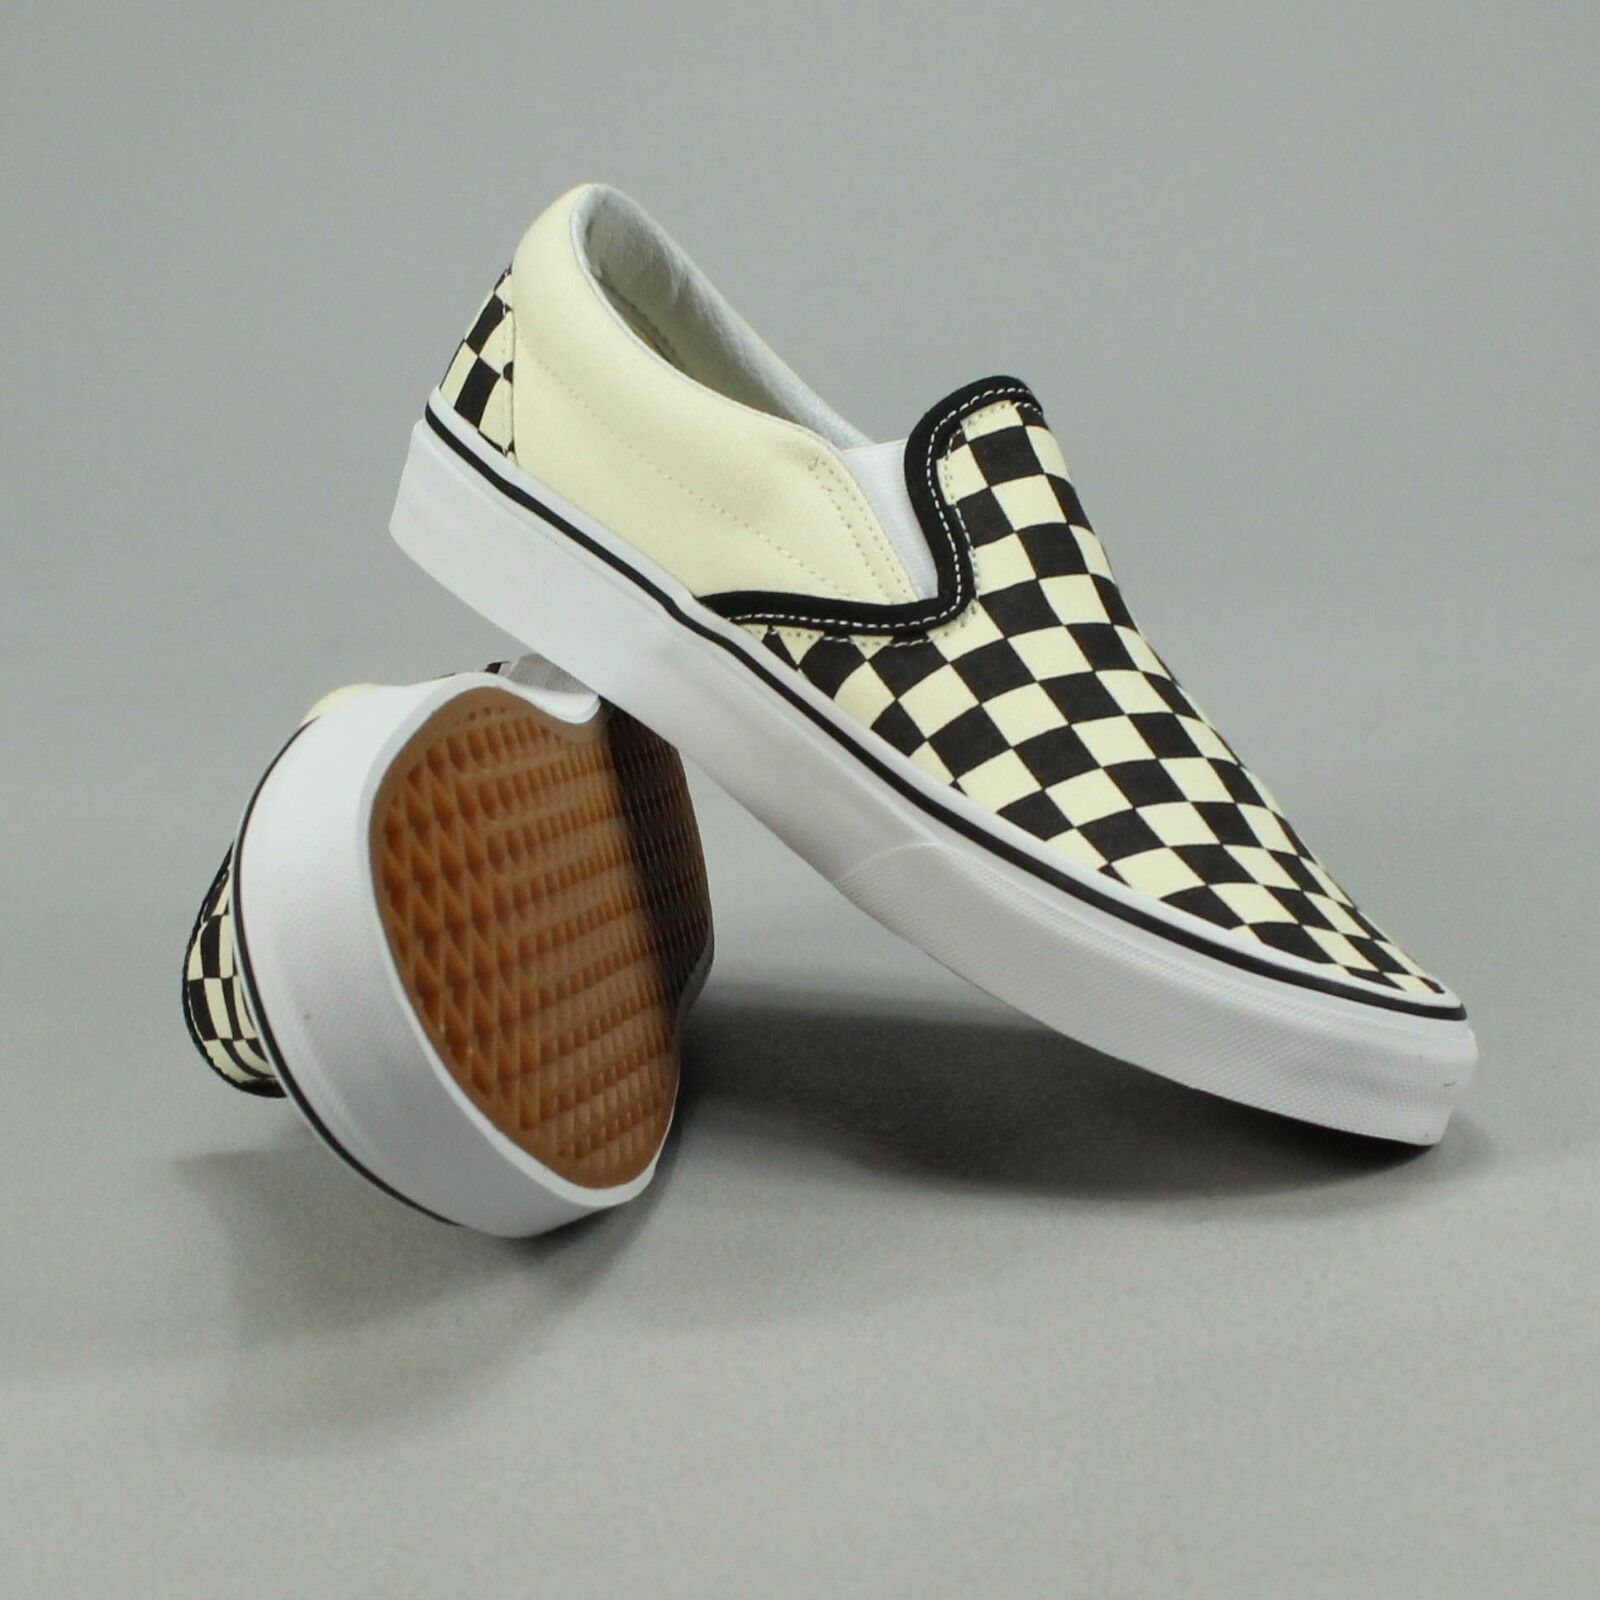 Vans Classic Slip-On Checkerboard 4,5,6,7,8,9,10,11,12 Black Trainers Sizes UK 4,5,6,7,8,9,10,11,12 Checkerboard 9556ba